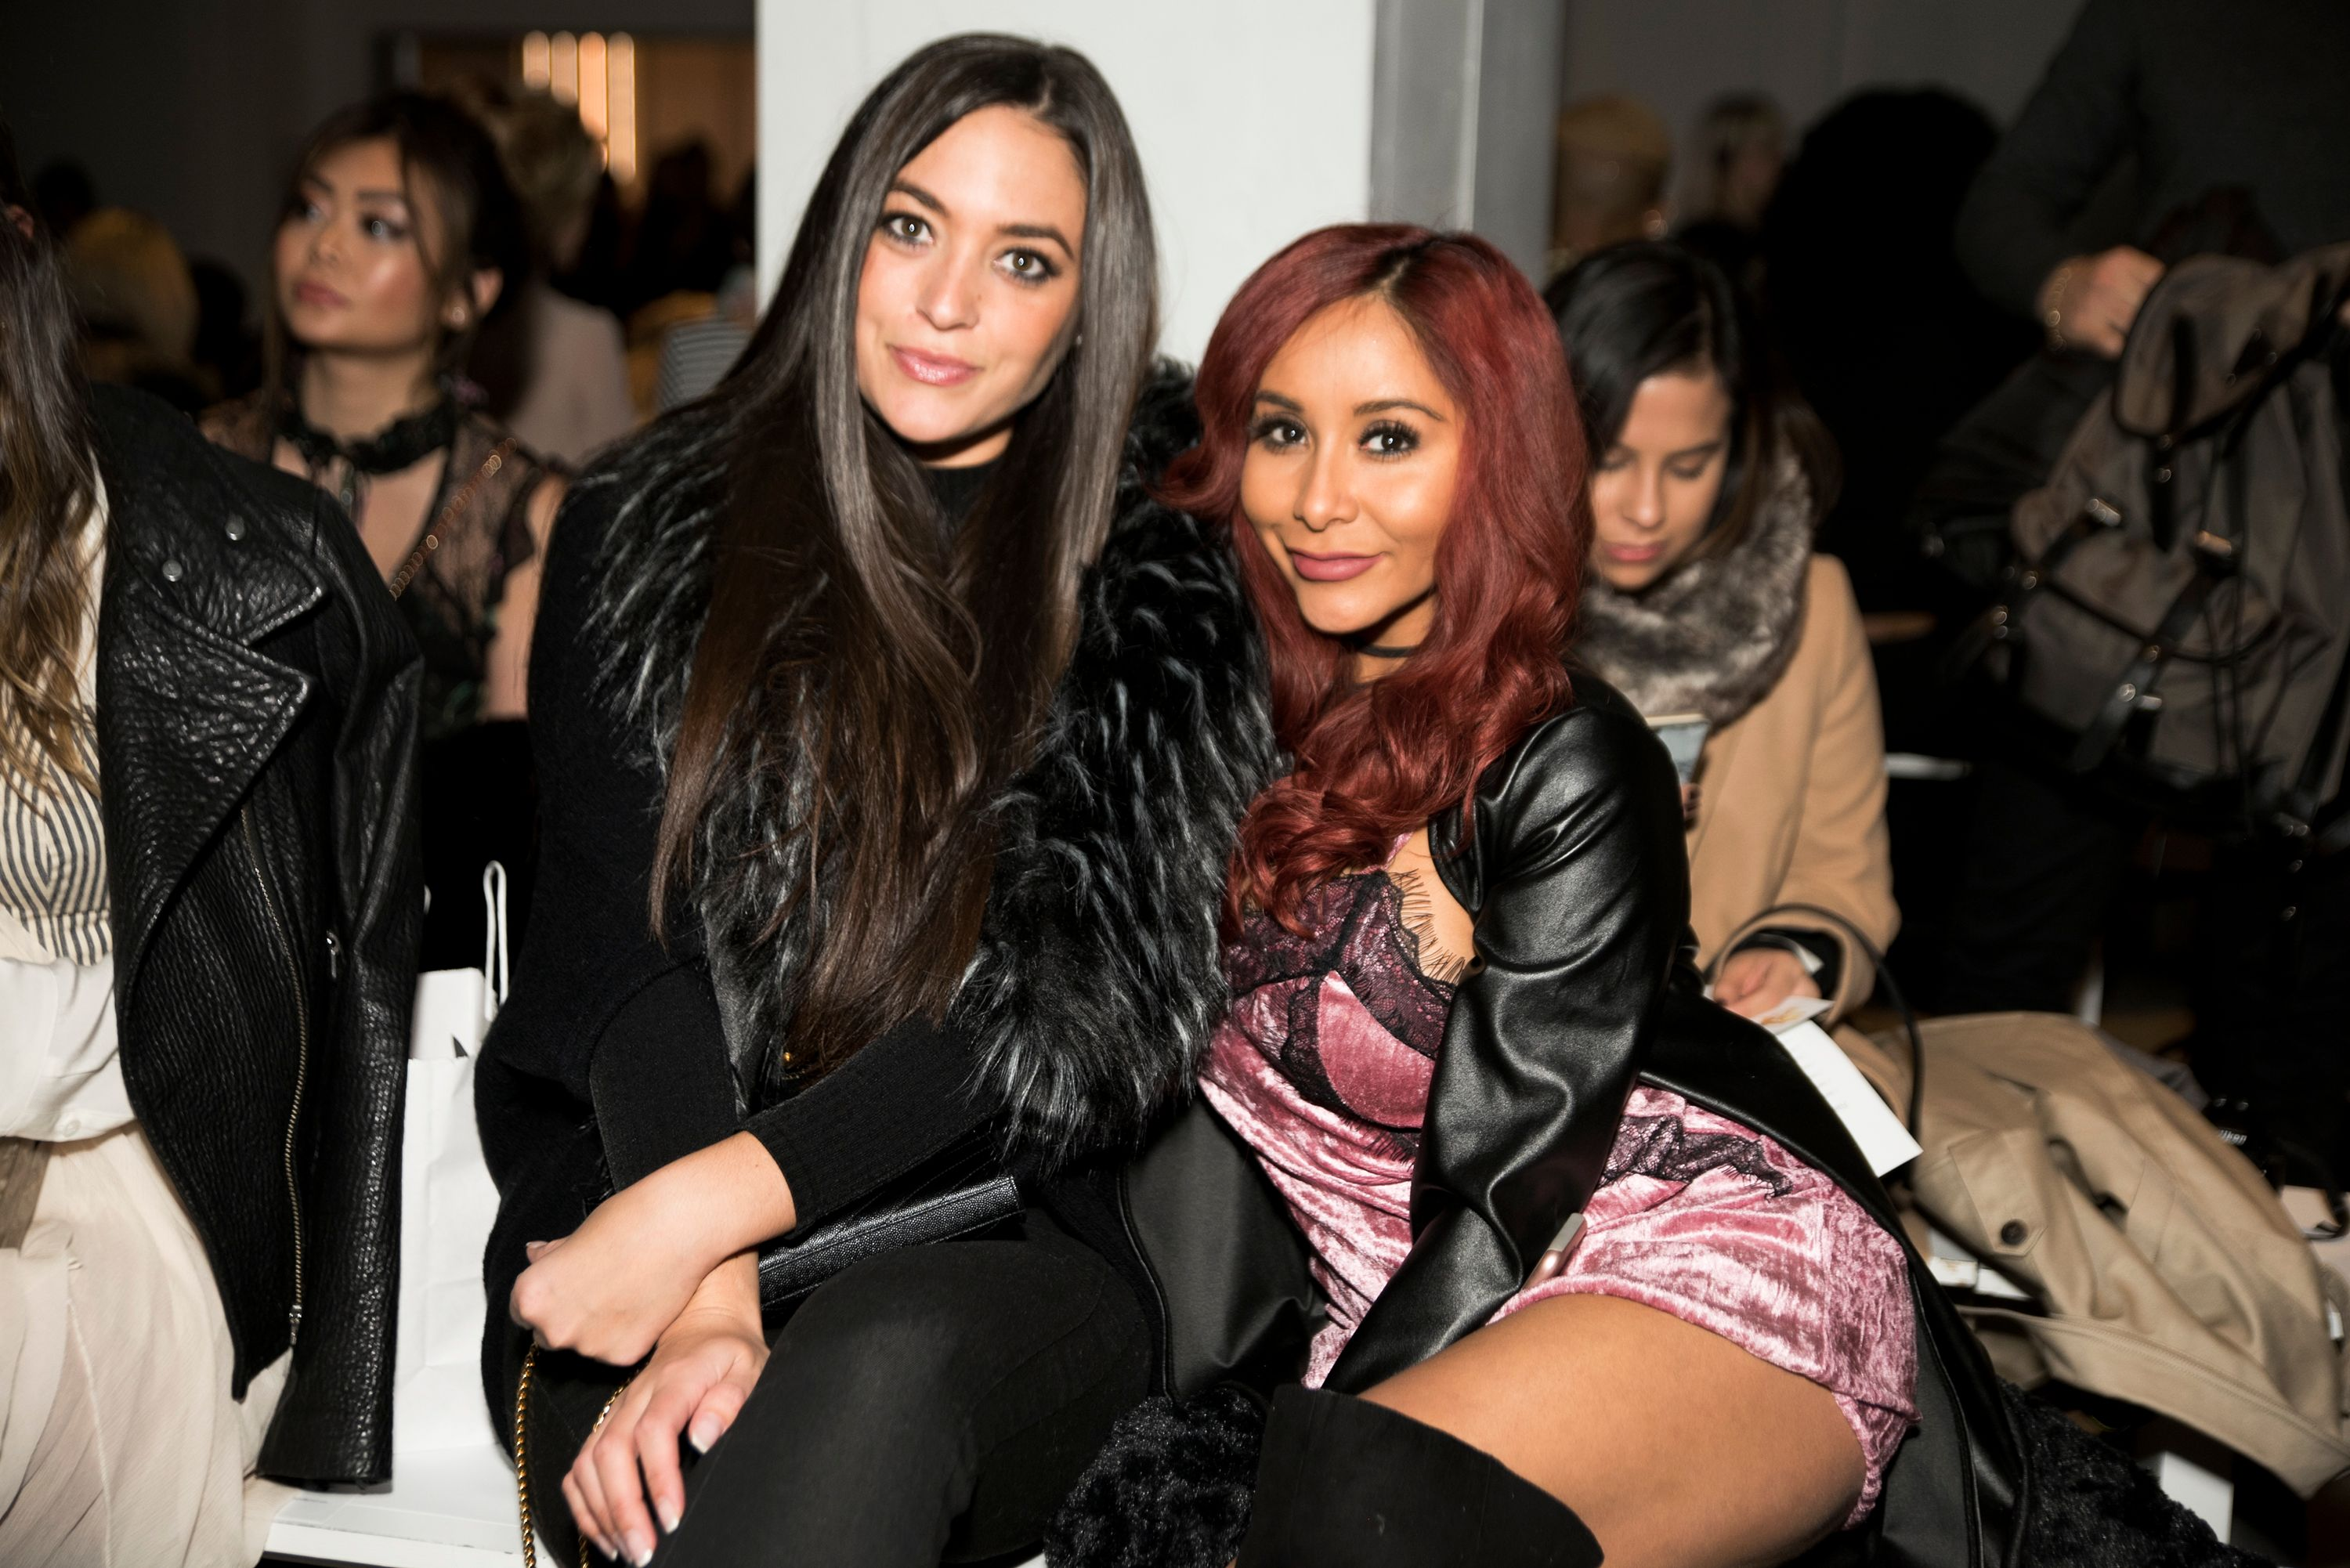 Sammi Giancol with Snooki from Jersey Shore at an event